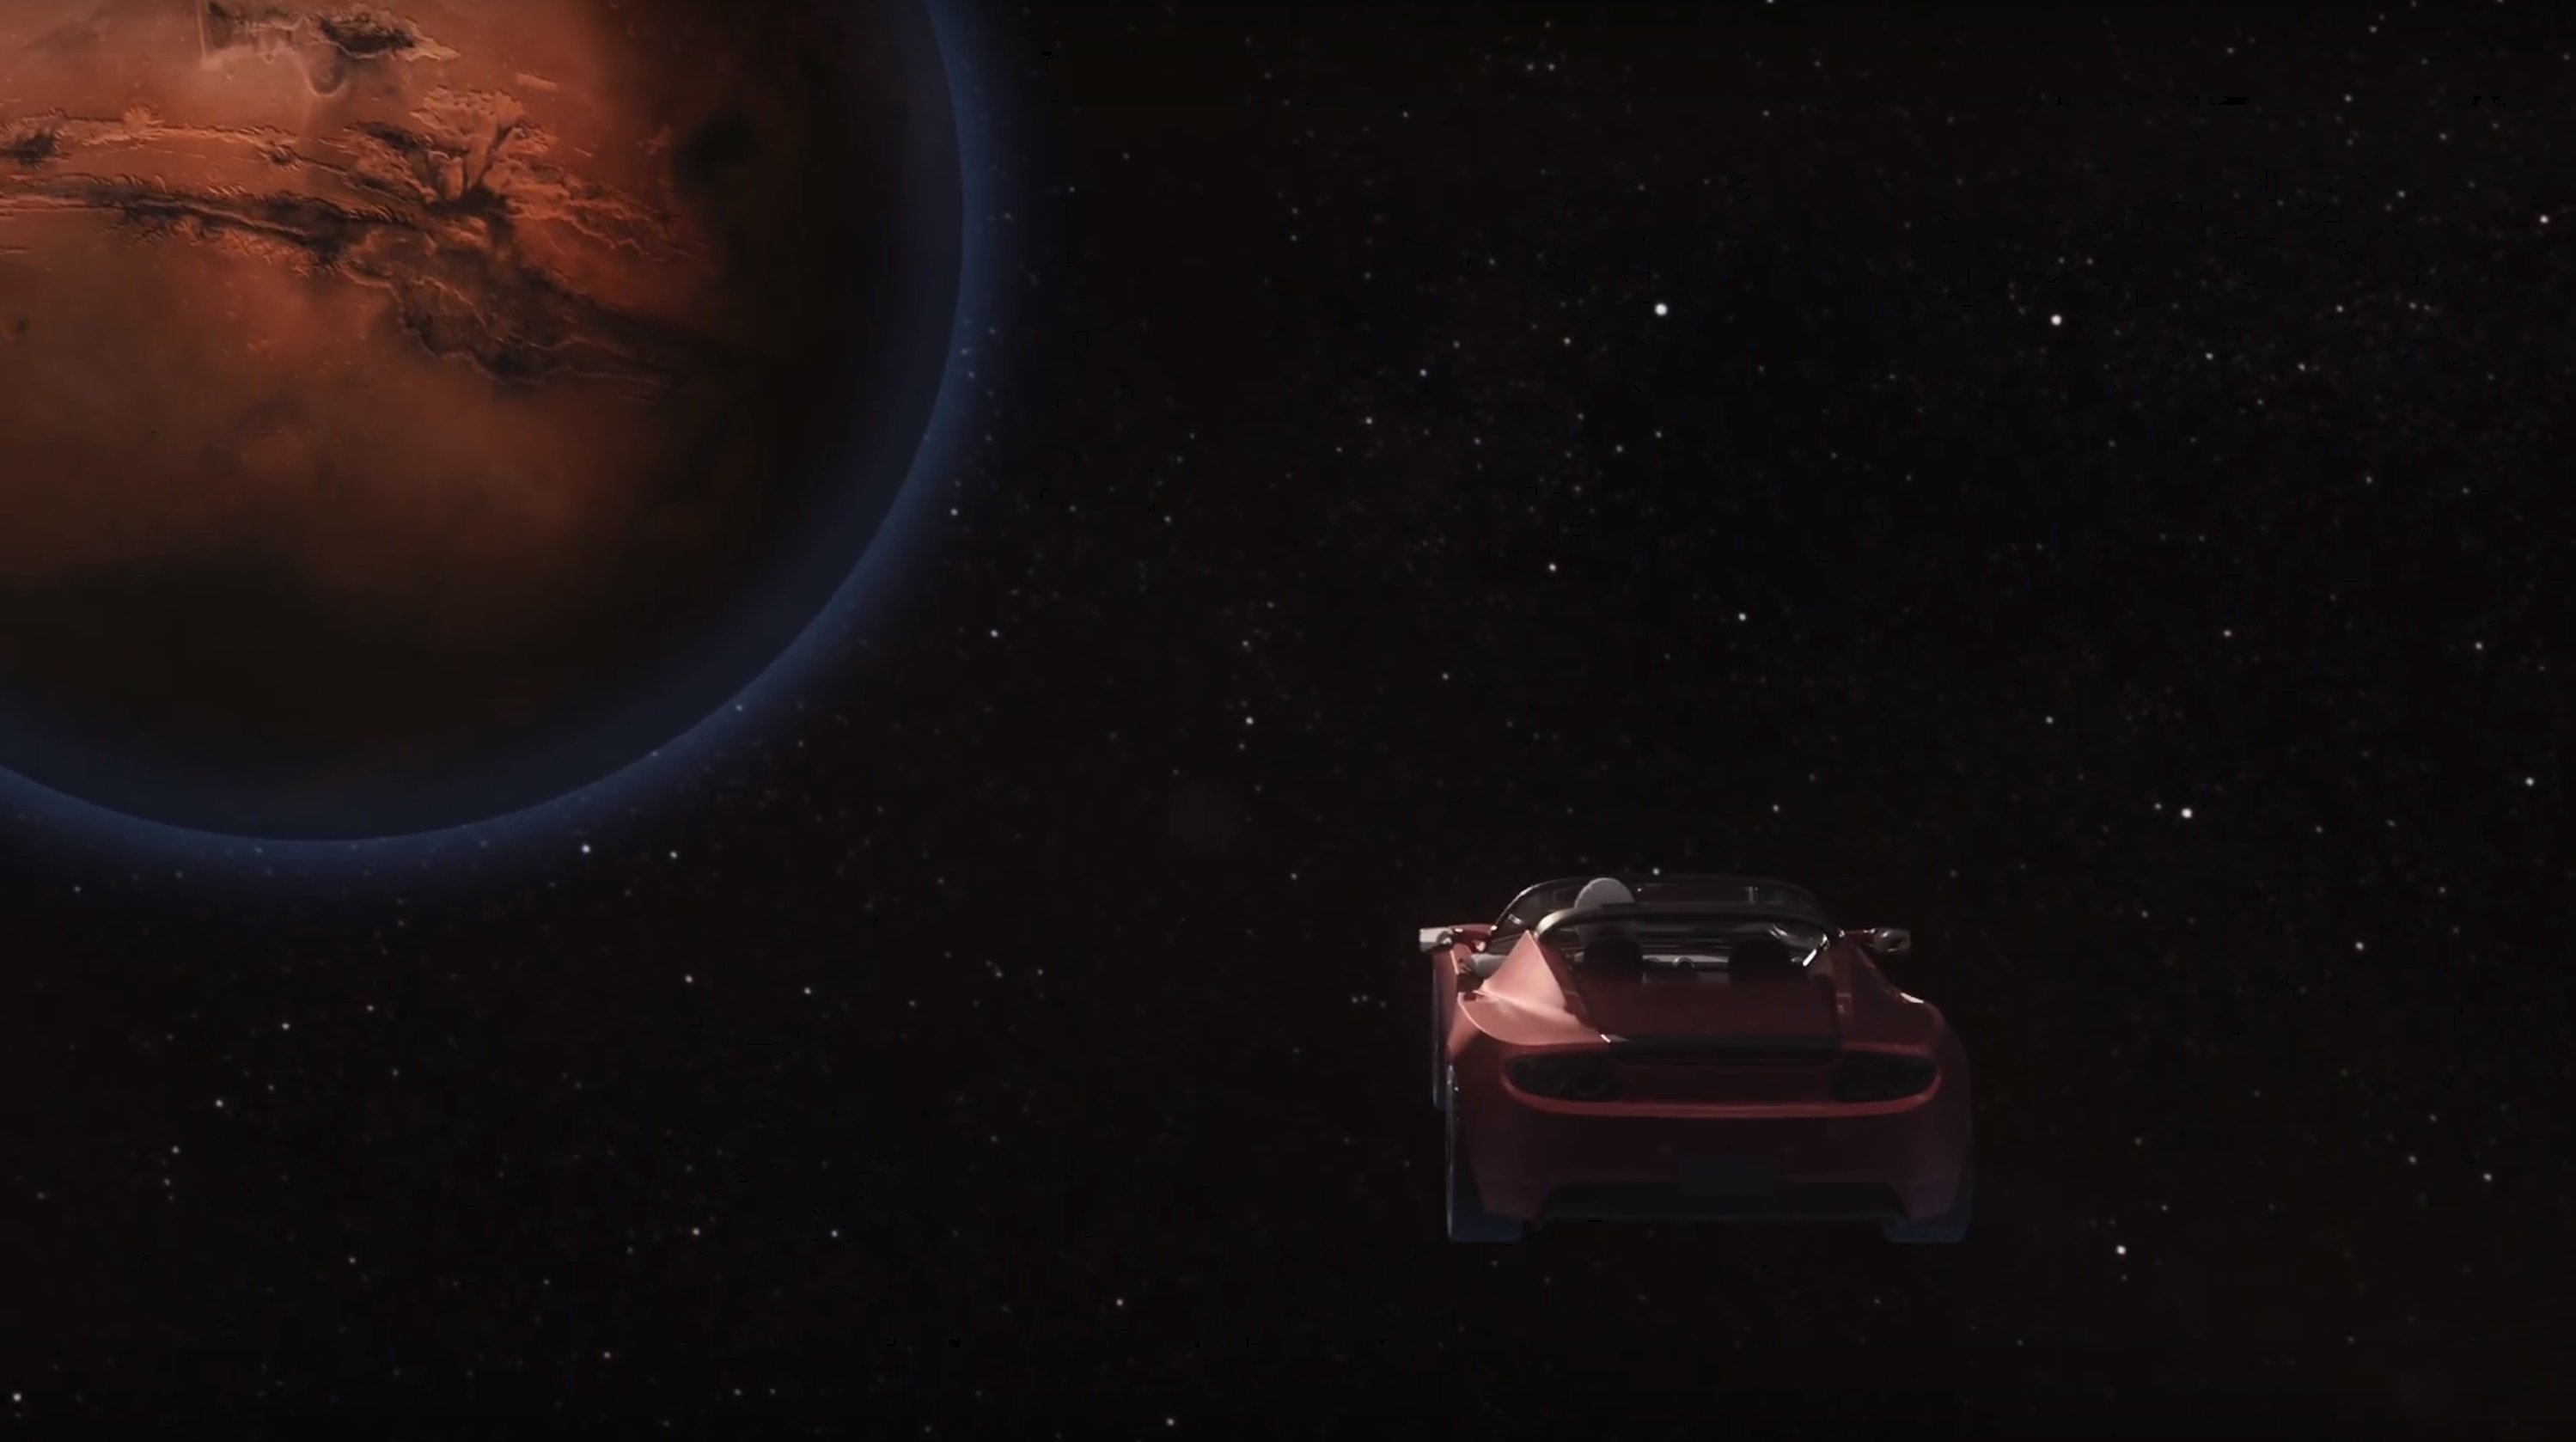 Roadster to Mars (SpaceX)